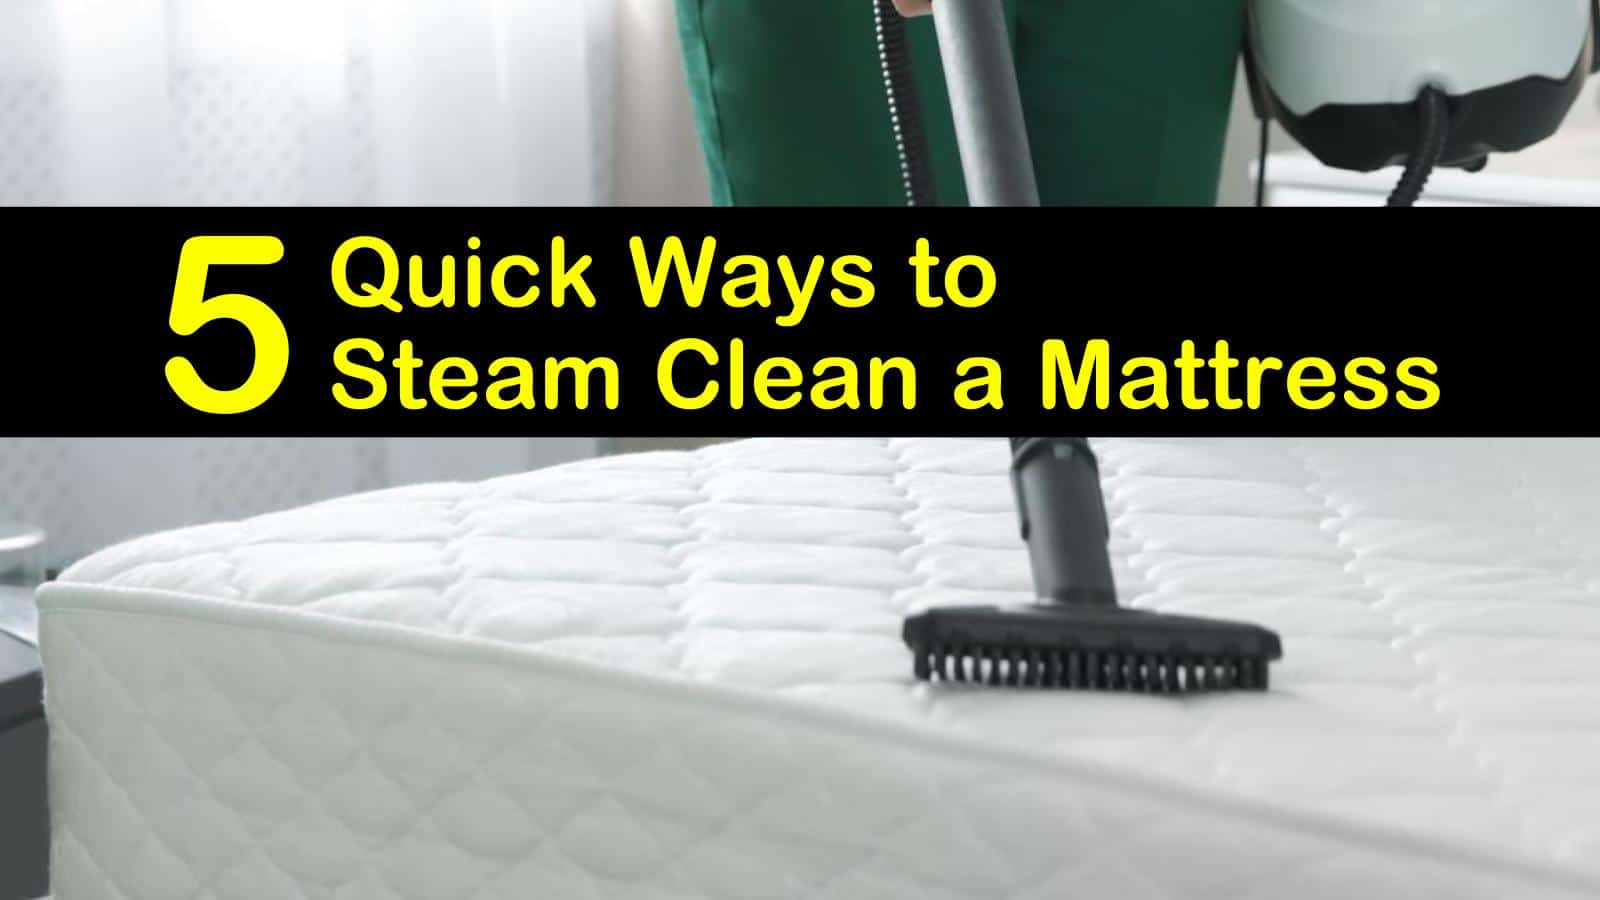 how to steam clean a mattress titleimg1